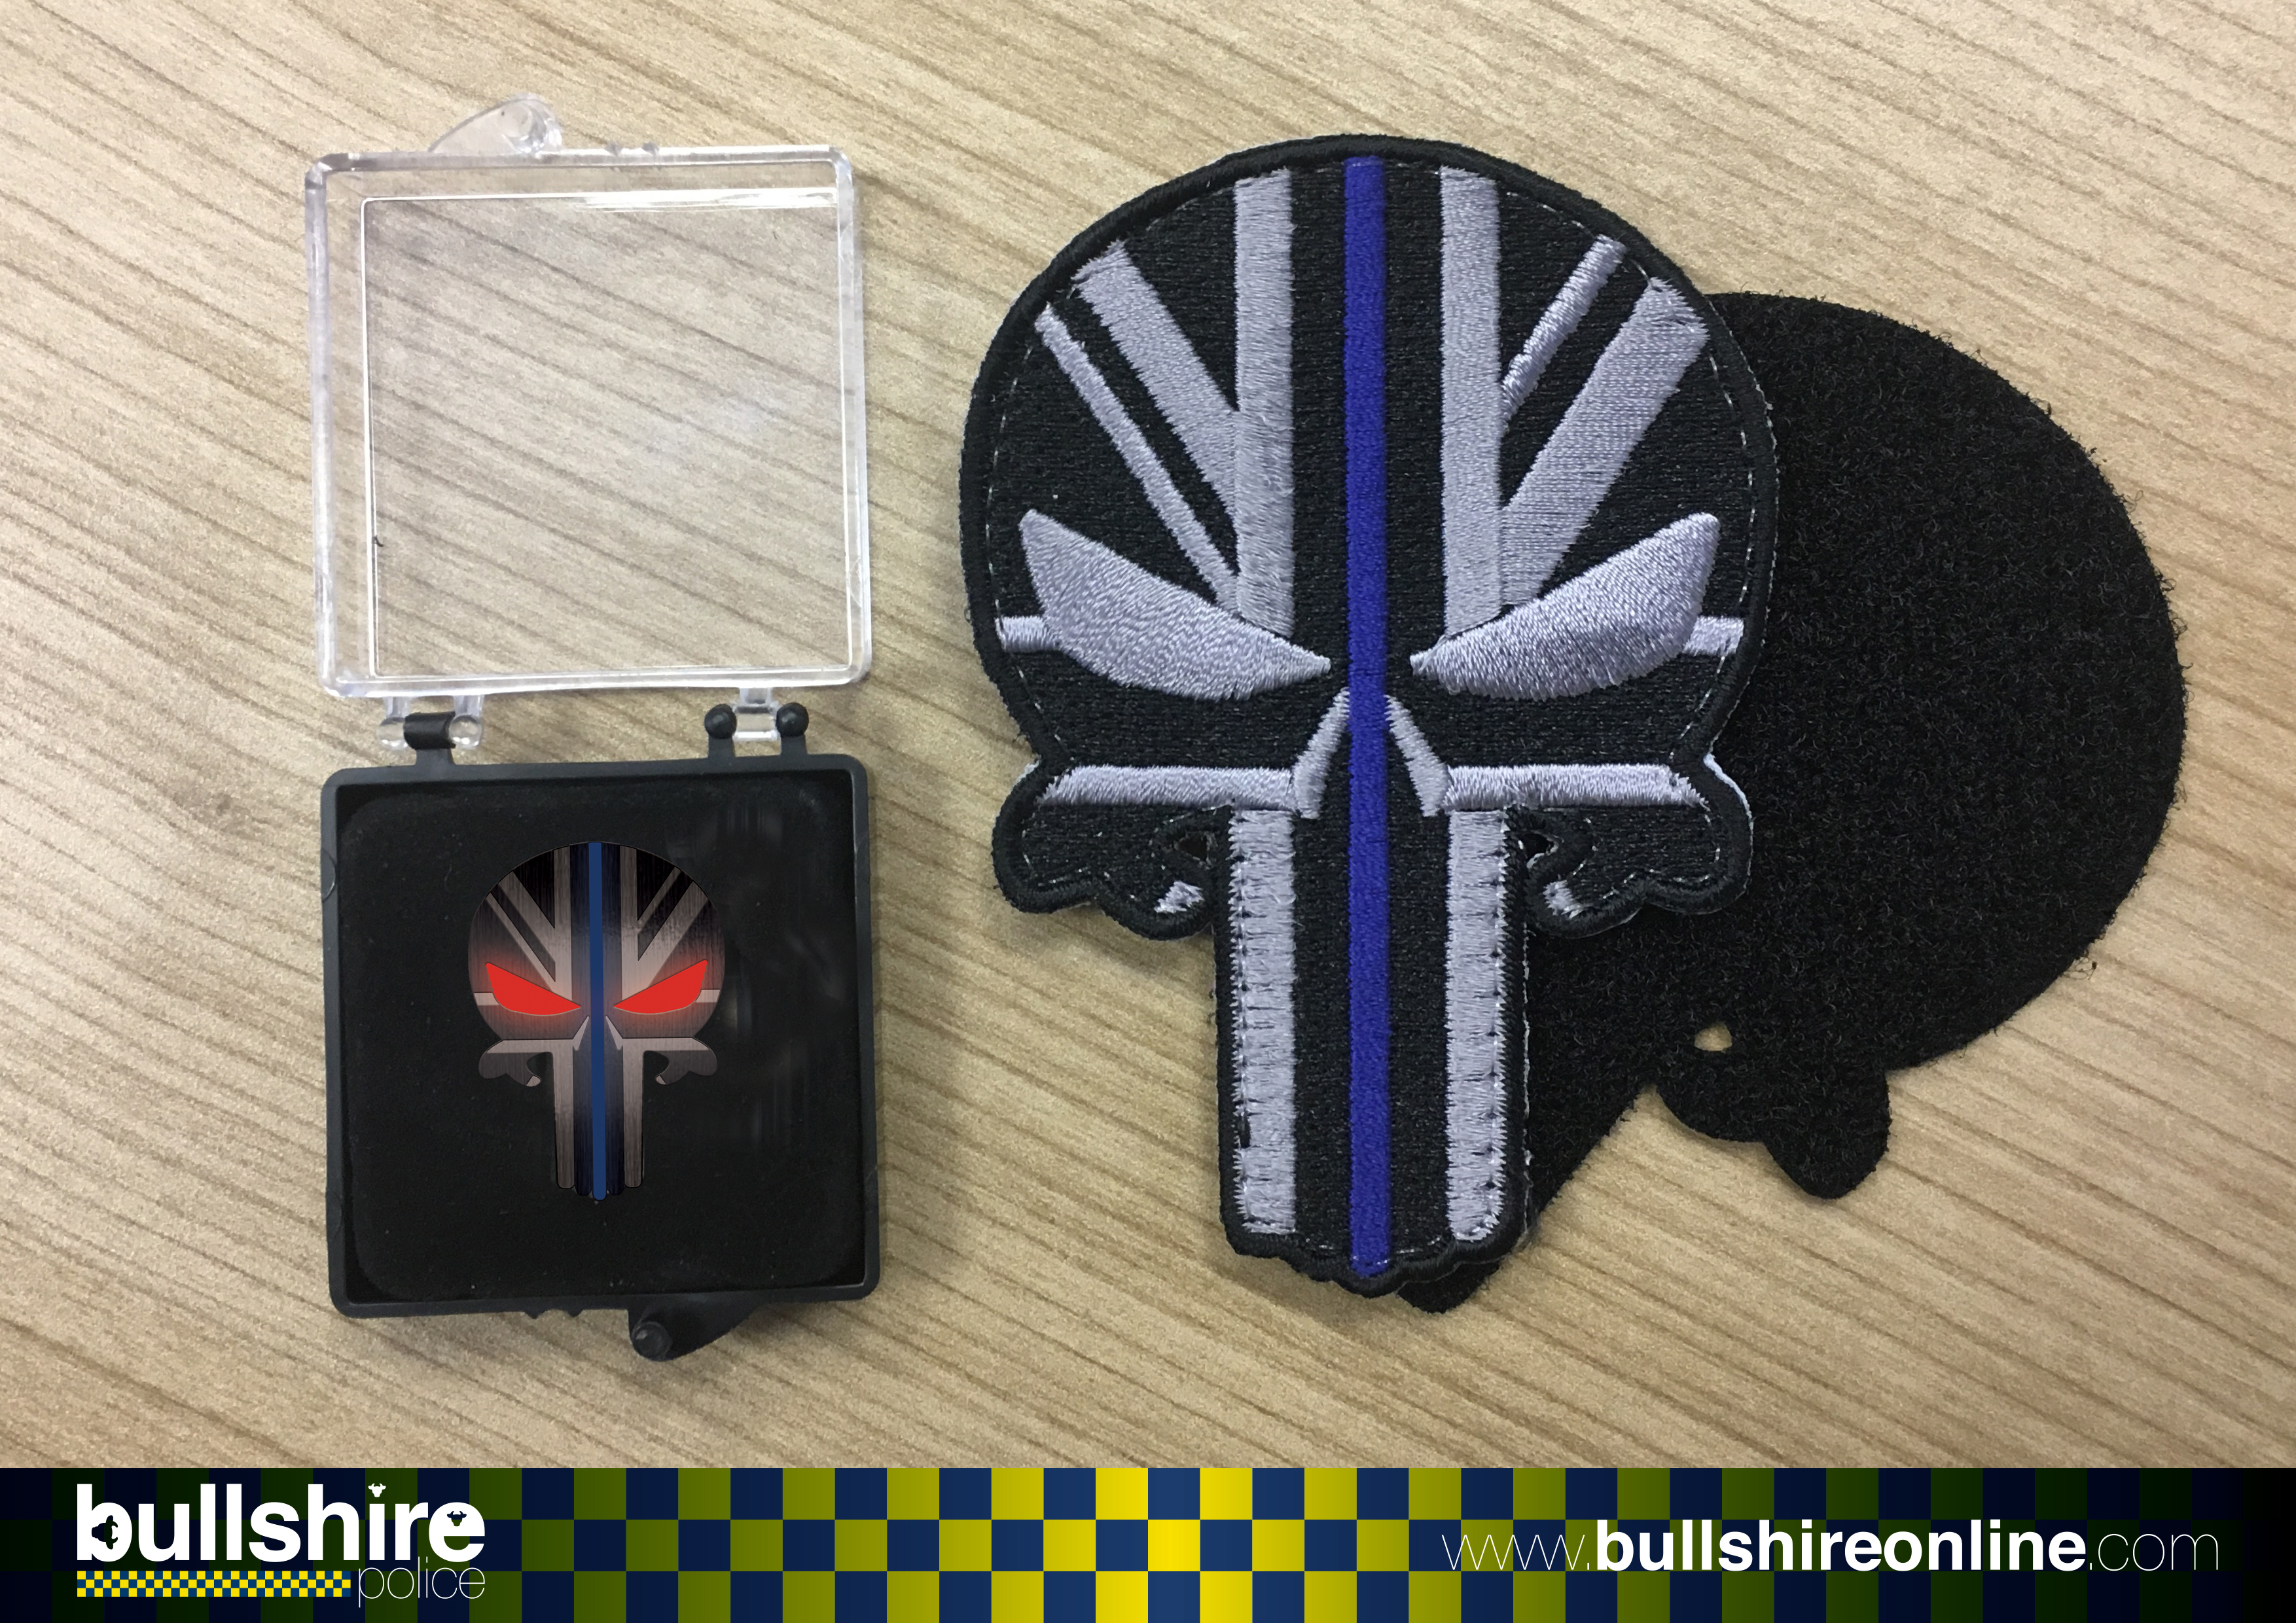 'STEALTH Punisher Bull' Pin Badge and Patch Combo